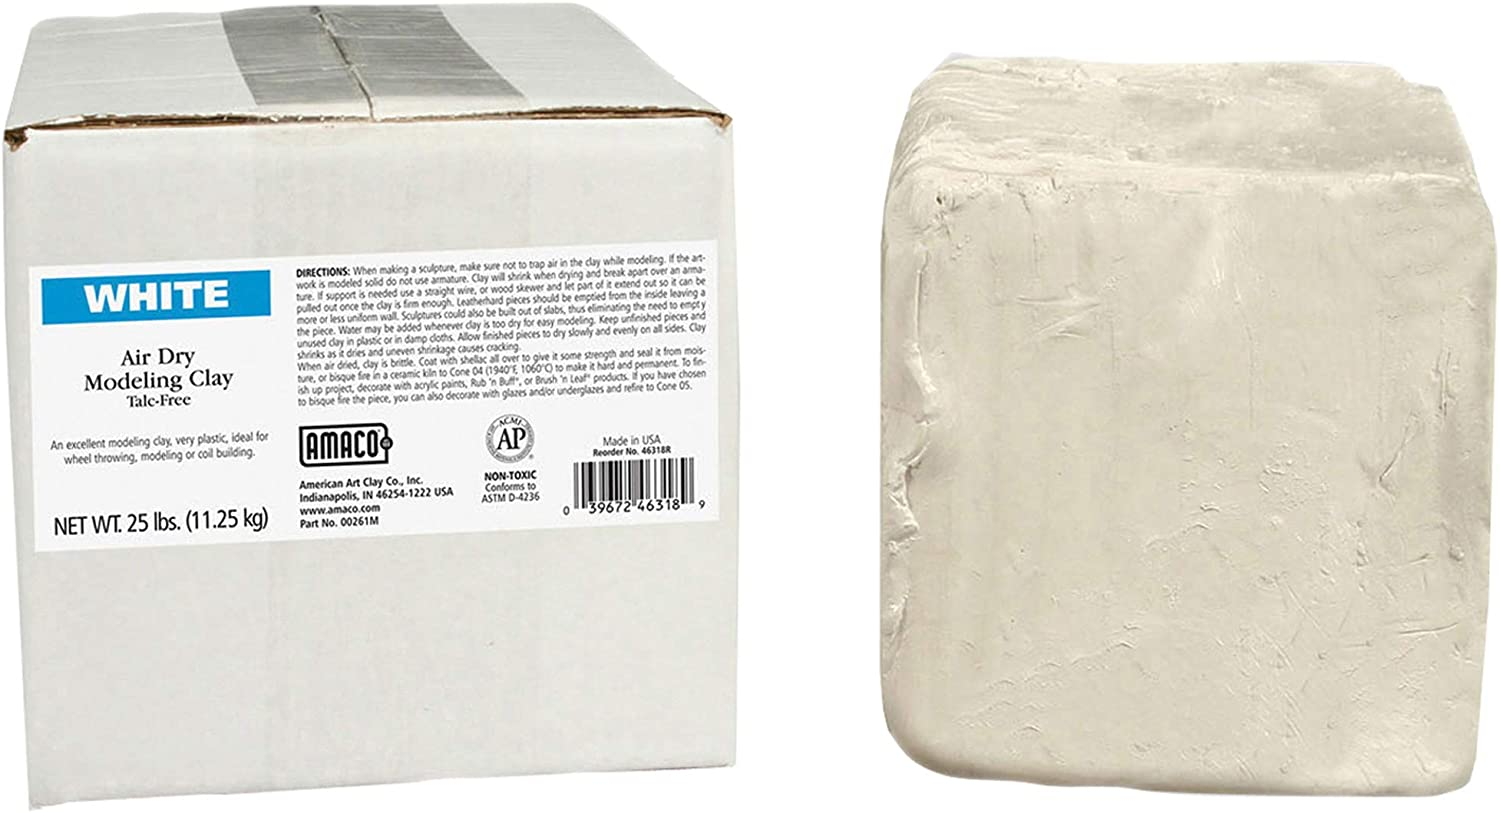 Toxic Free Self Hardening Air Dry Clay 25lb, White Self Hardening Modeling Clay Dries Over Night